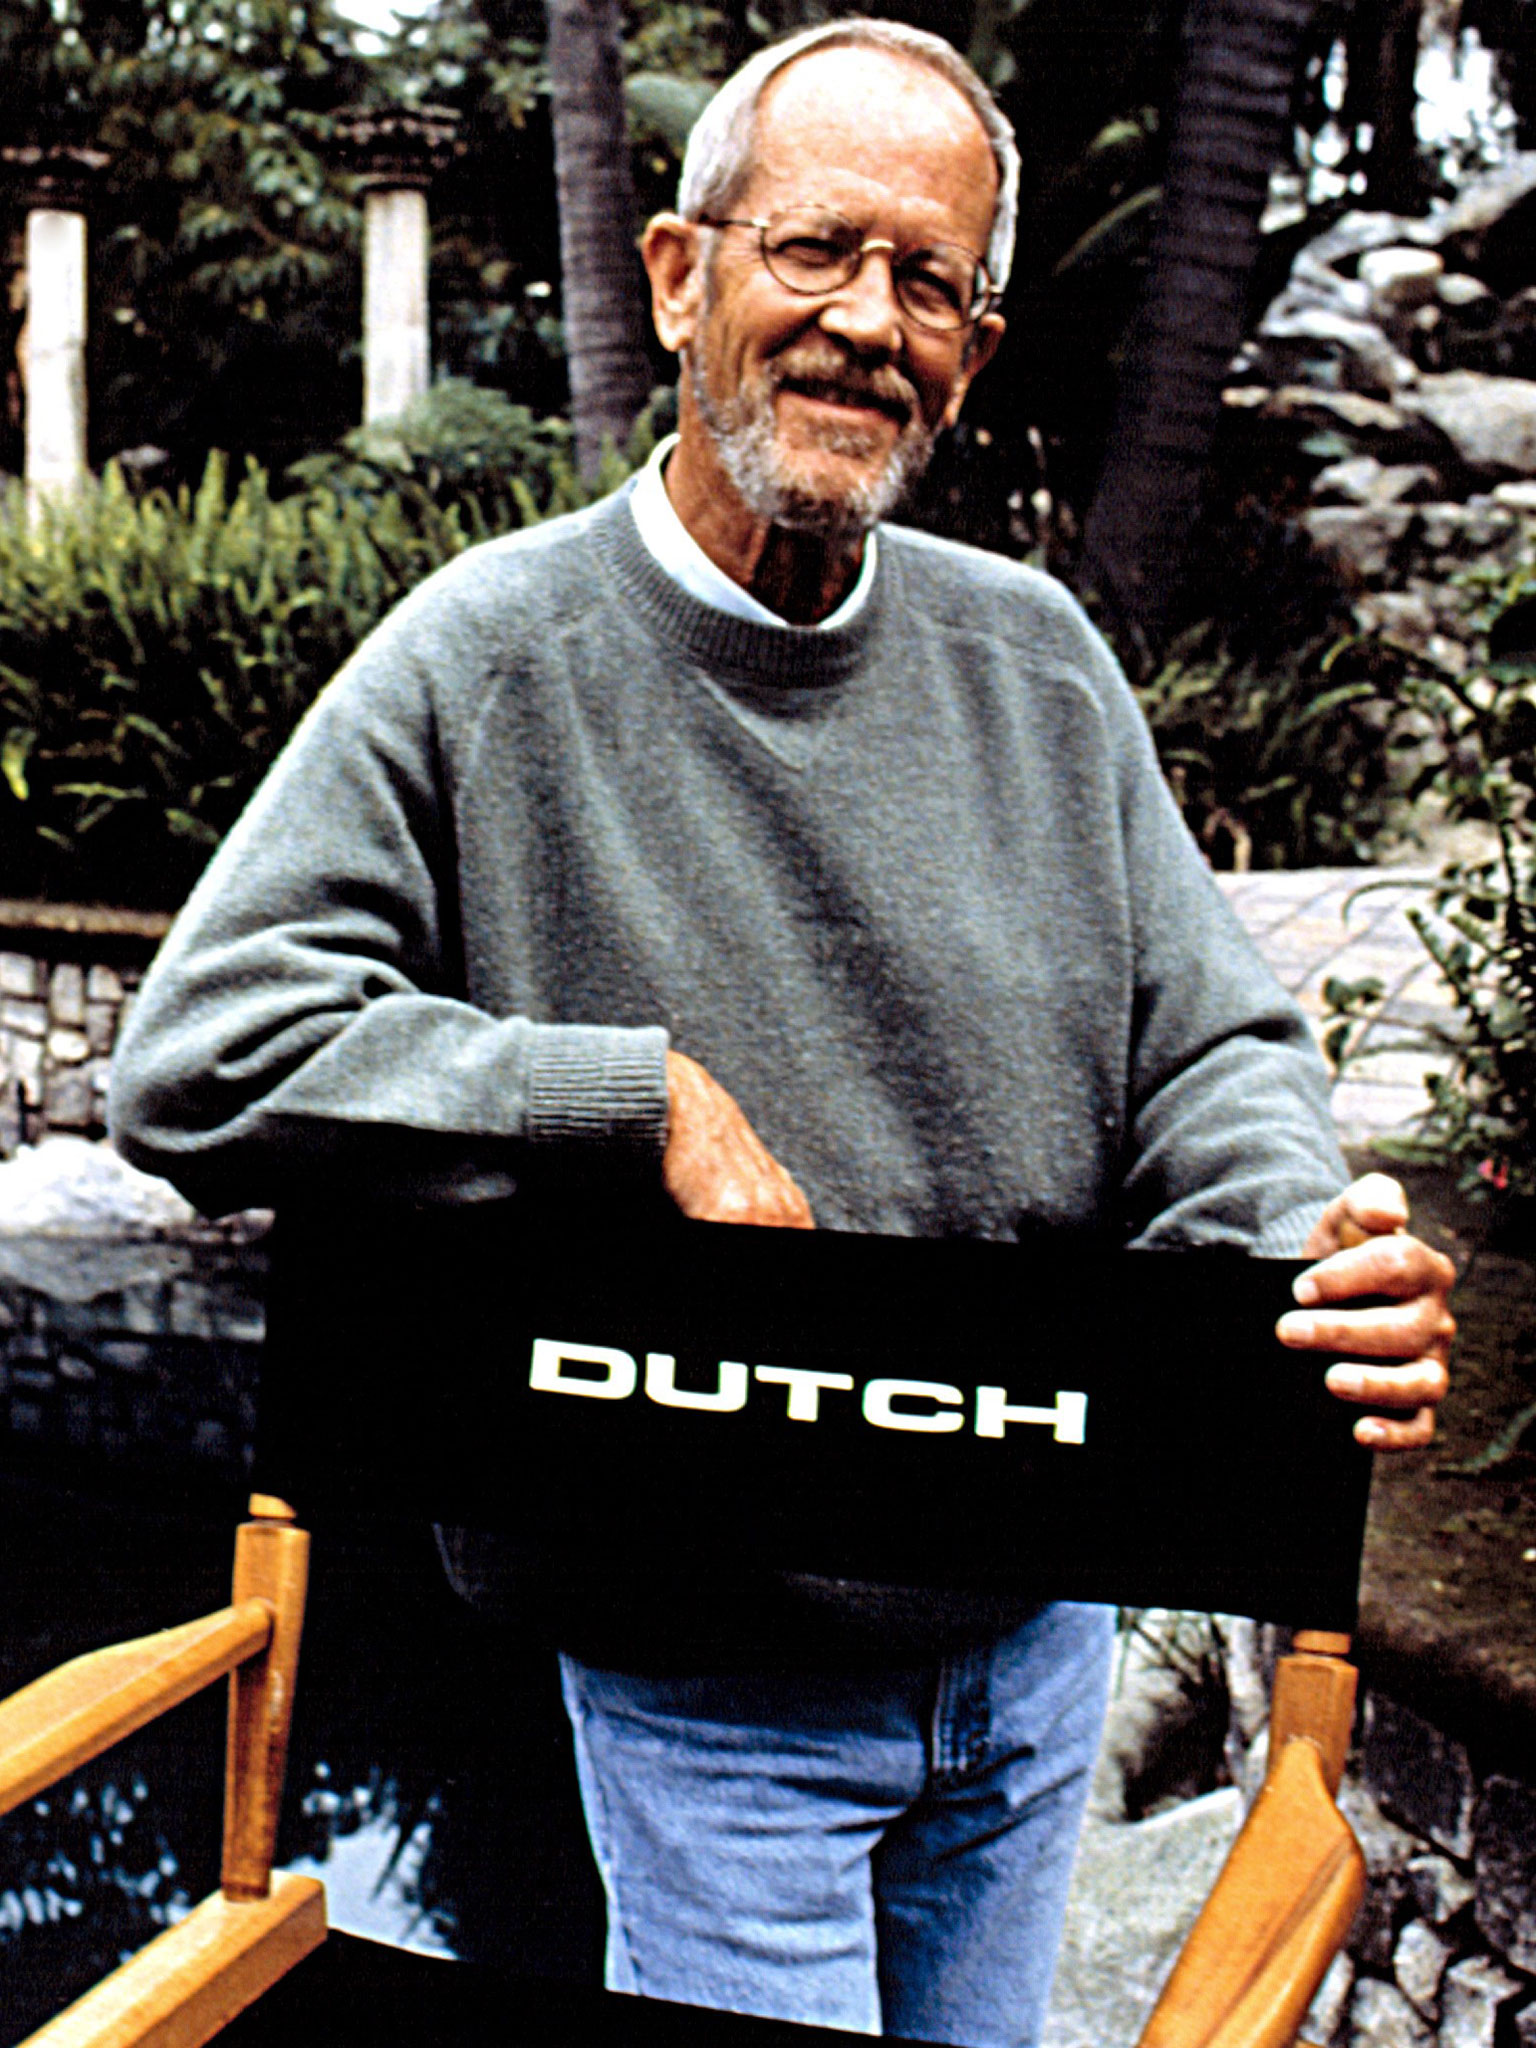 Author Elmore Leonard on the set of 'Get Shorty' in 1995 (Photo: Everett Collection)